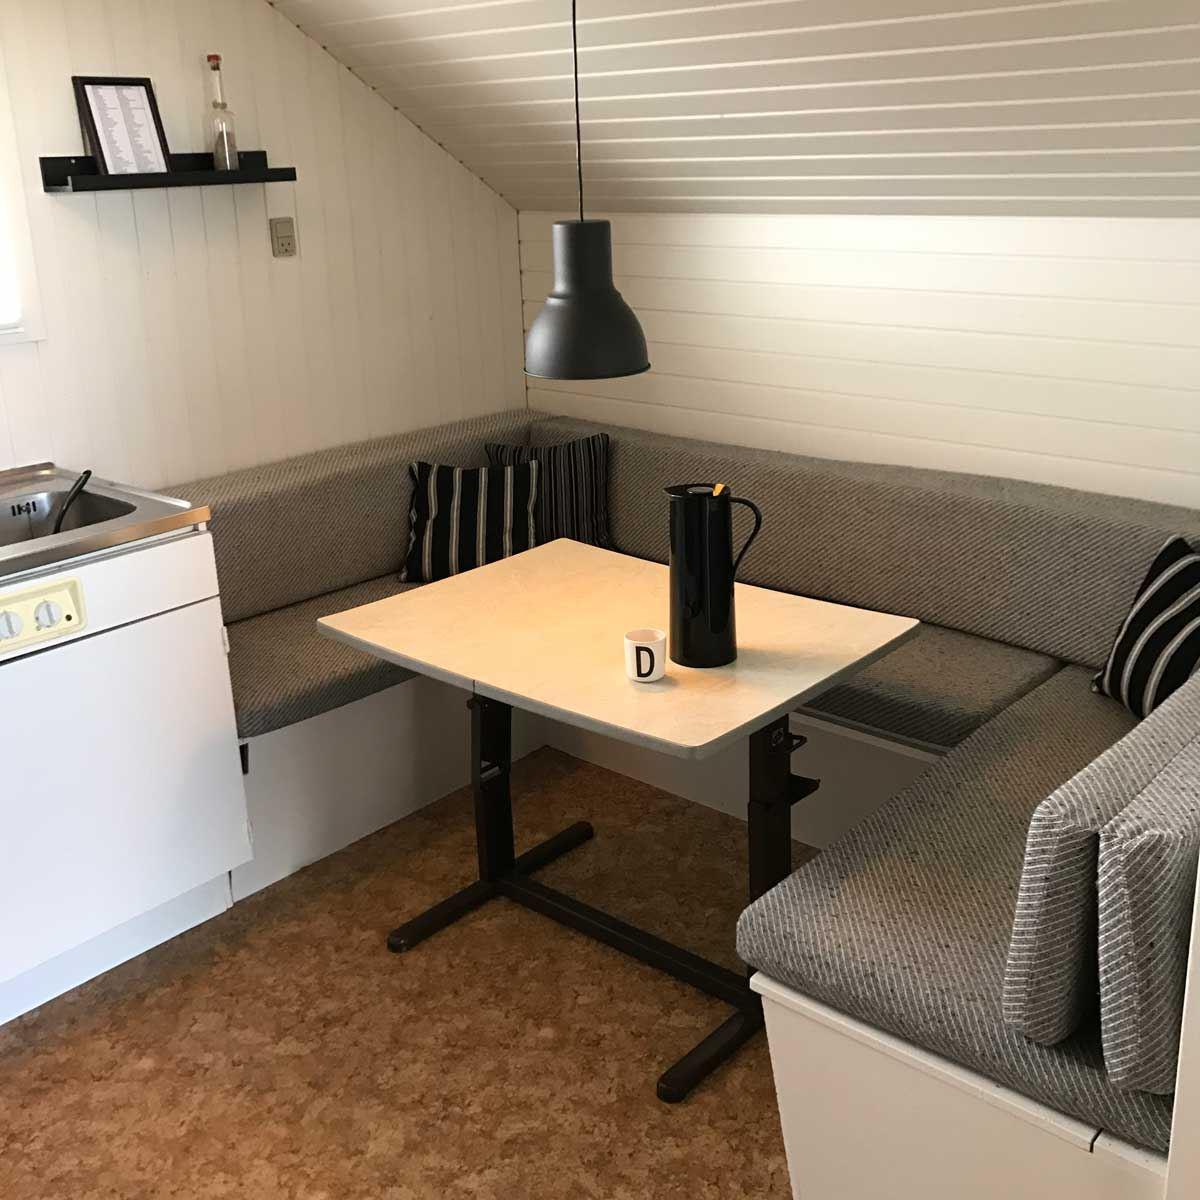 Universepackage at Drejby Strandcamping: in holiday cottage